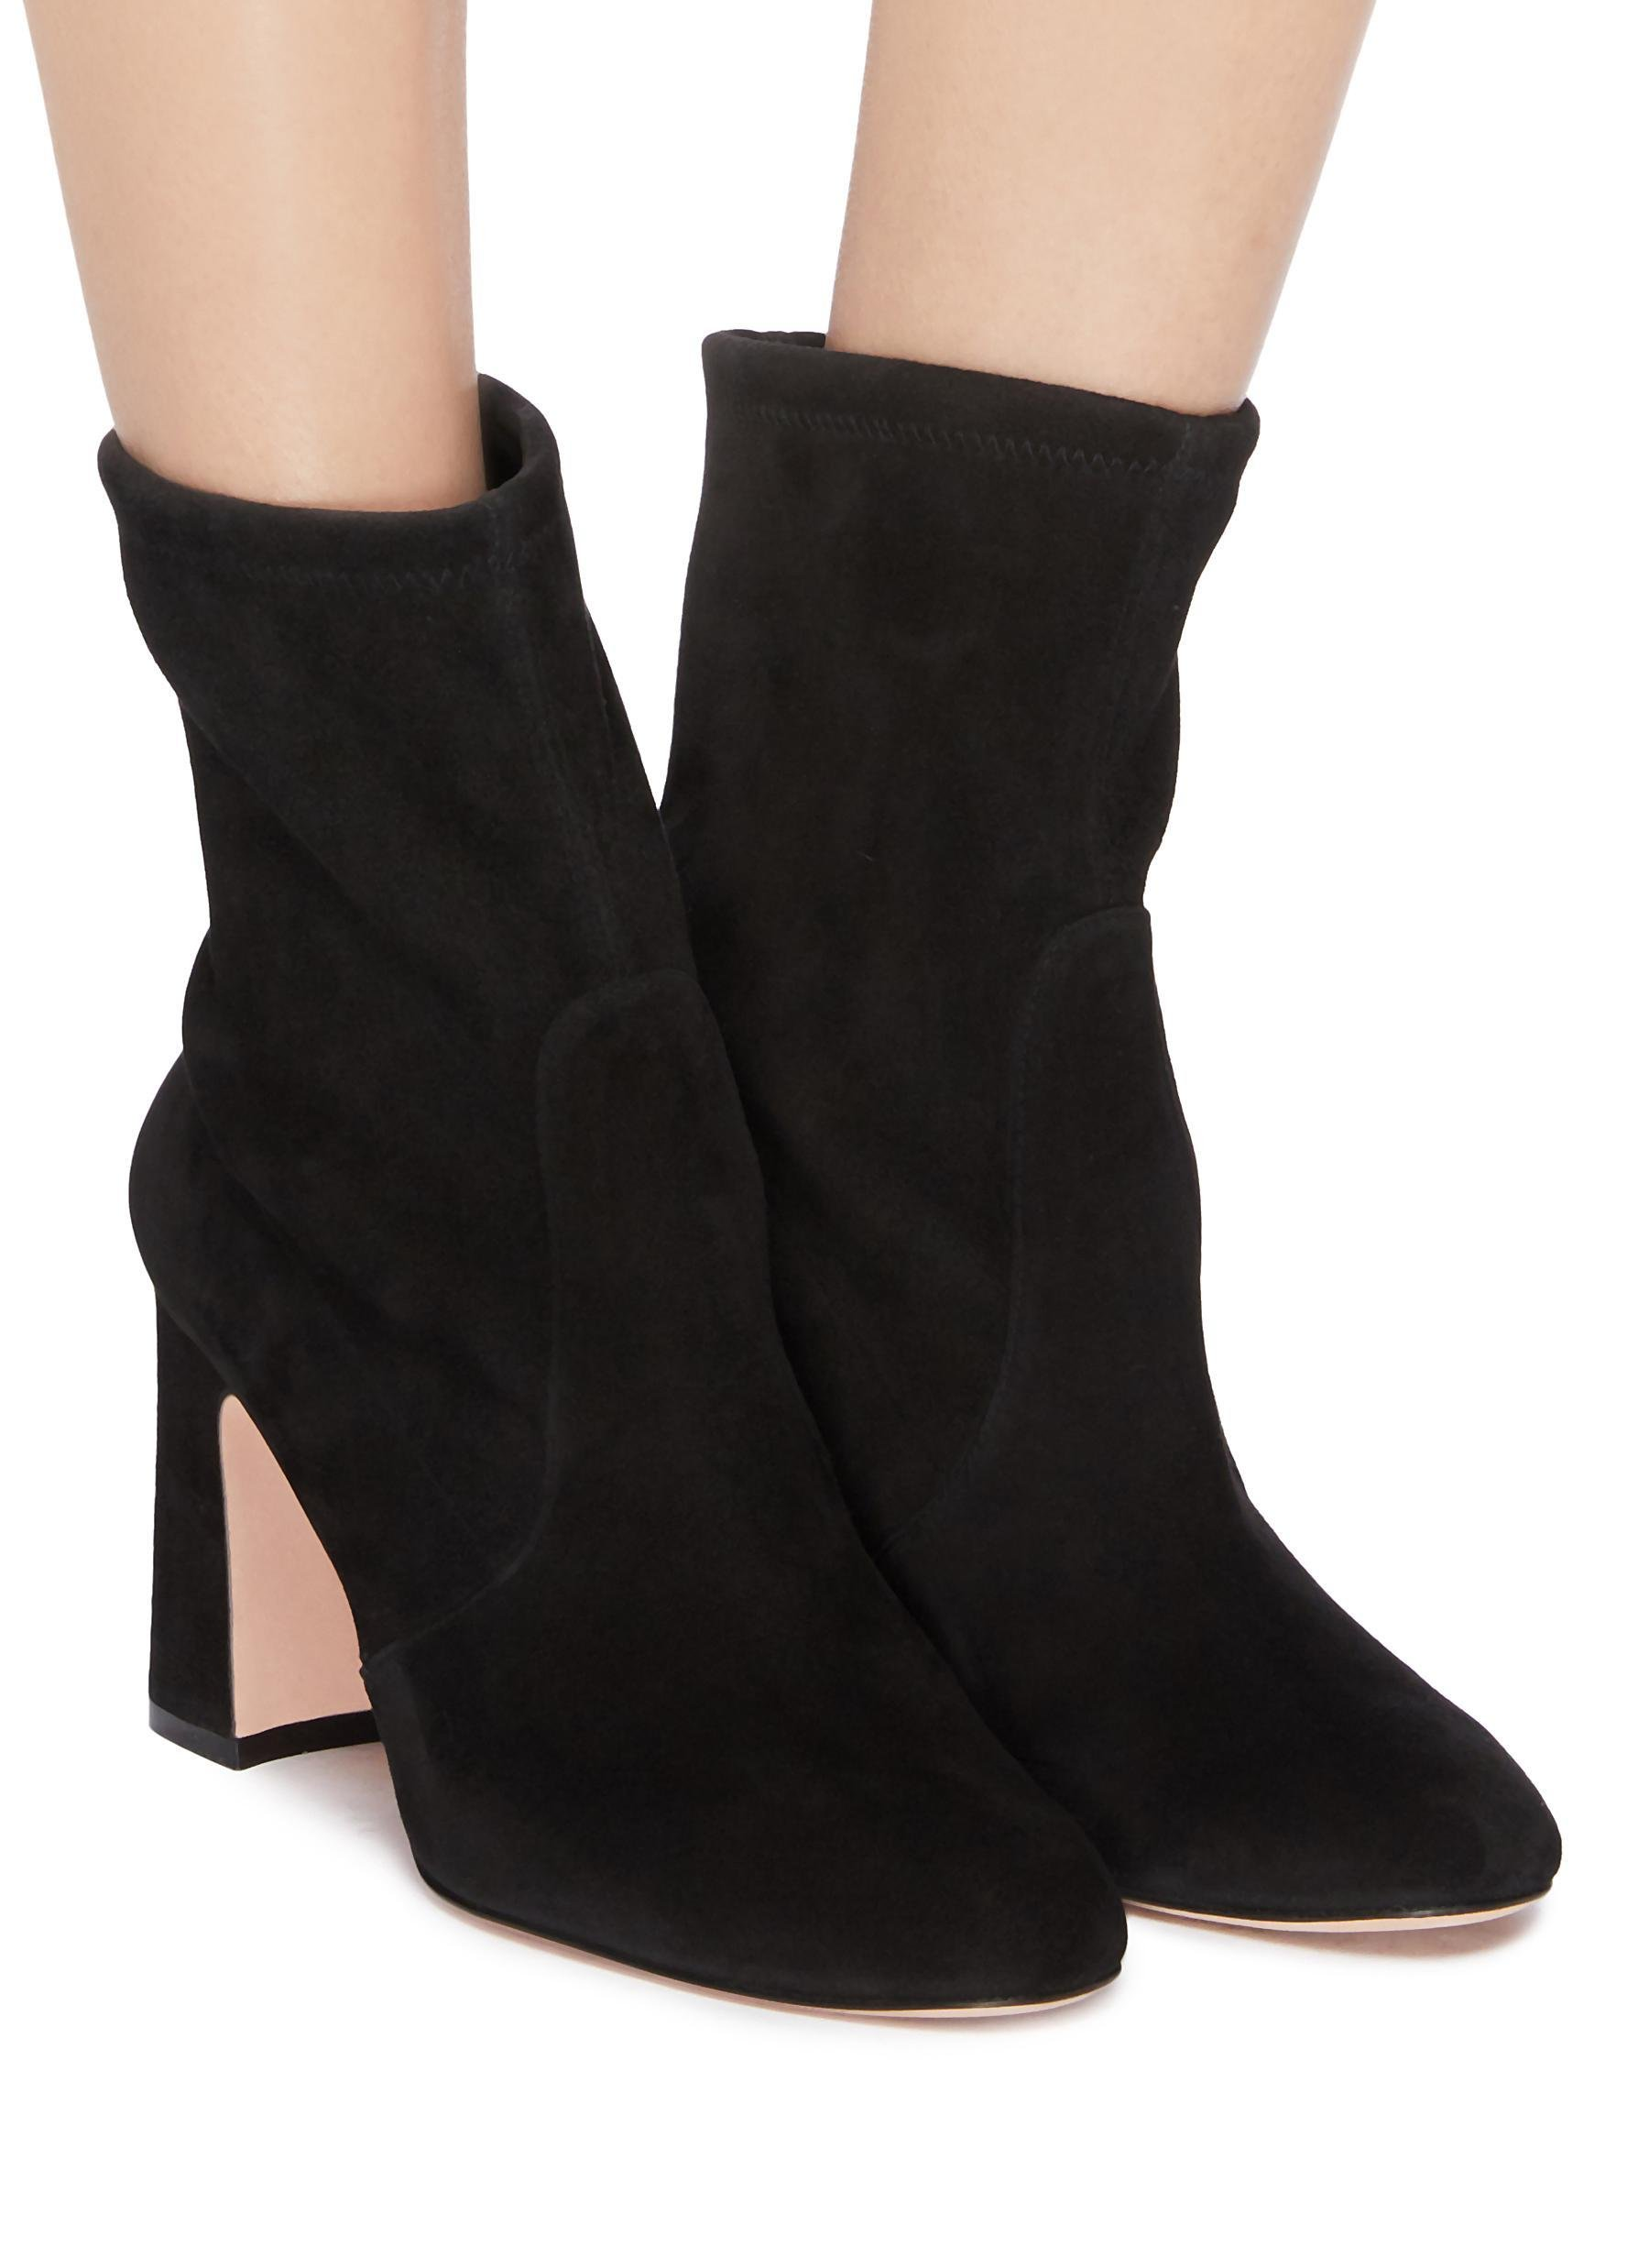 0212f1720d0 Stuart Weitzman - Black  niki  Stretch Suede Ankle Boots - Lyst. View  fullscreen